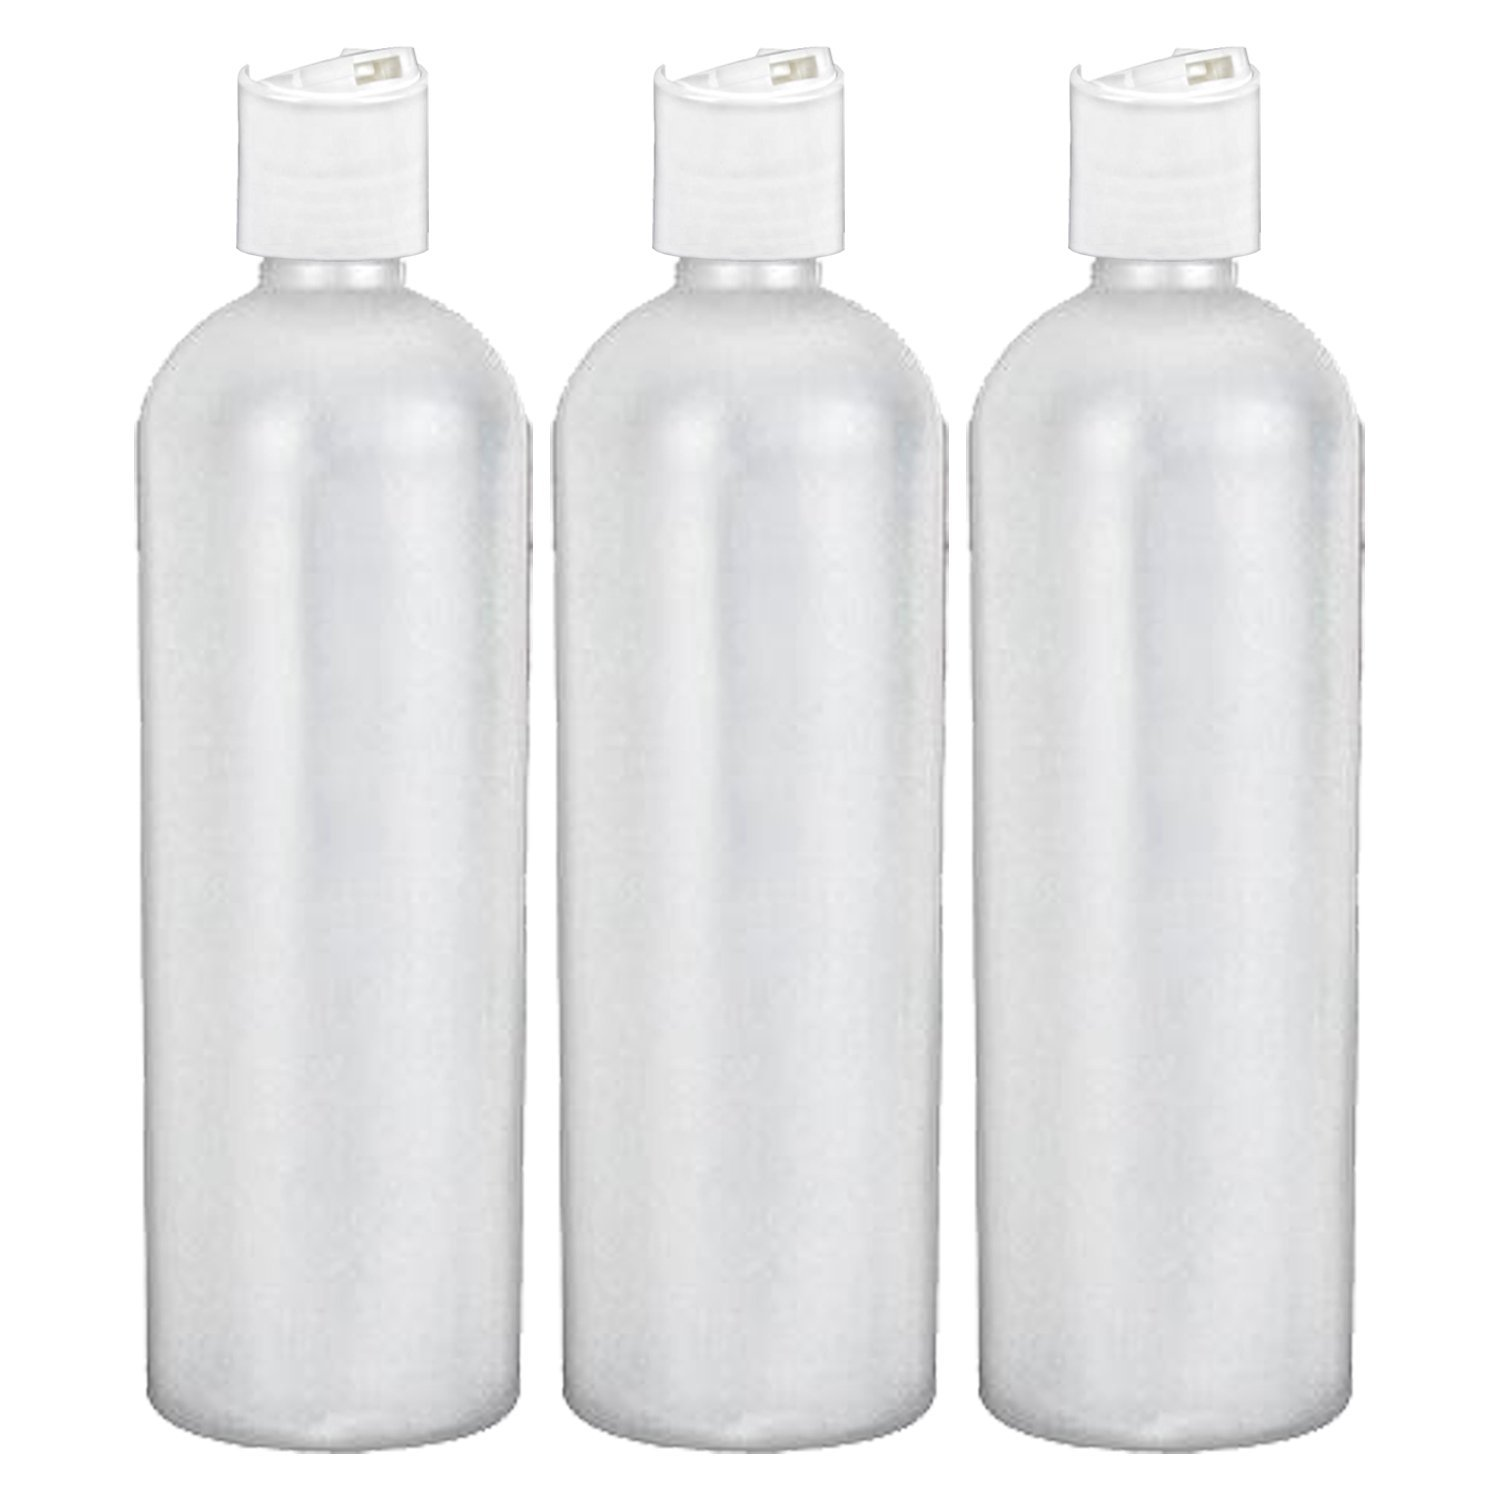 MoYo Natural Labs 16 oz Travel Containers, Empty Shampoo Bottles with Disc Caps, BPA Free HDPE Plastic Squeezable Toiletry/Cosmetics Bottles (3 pack, Translucent White)